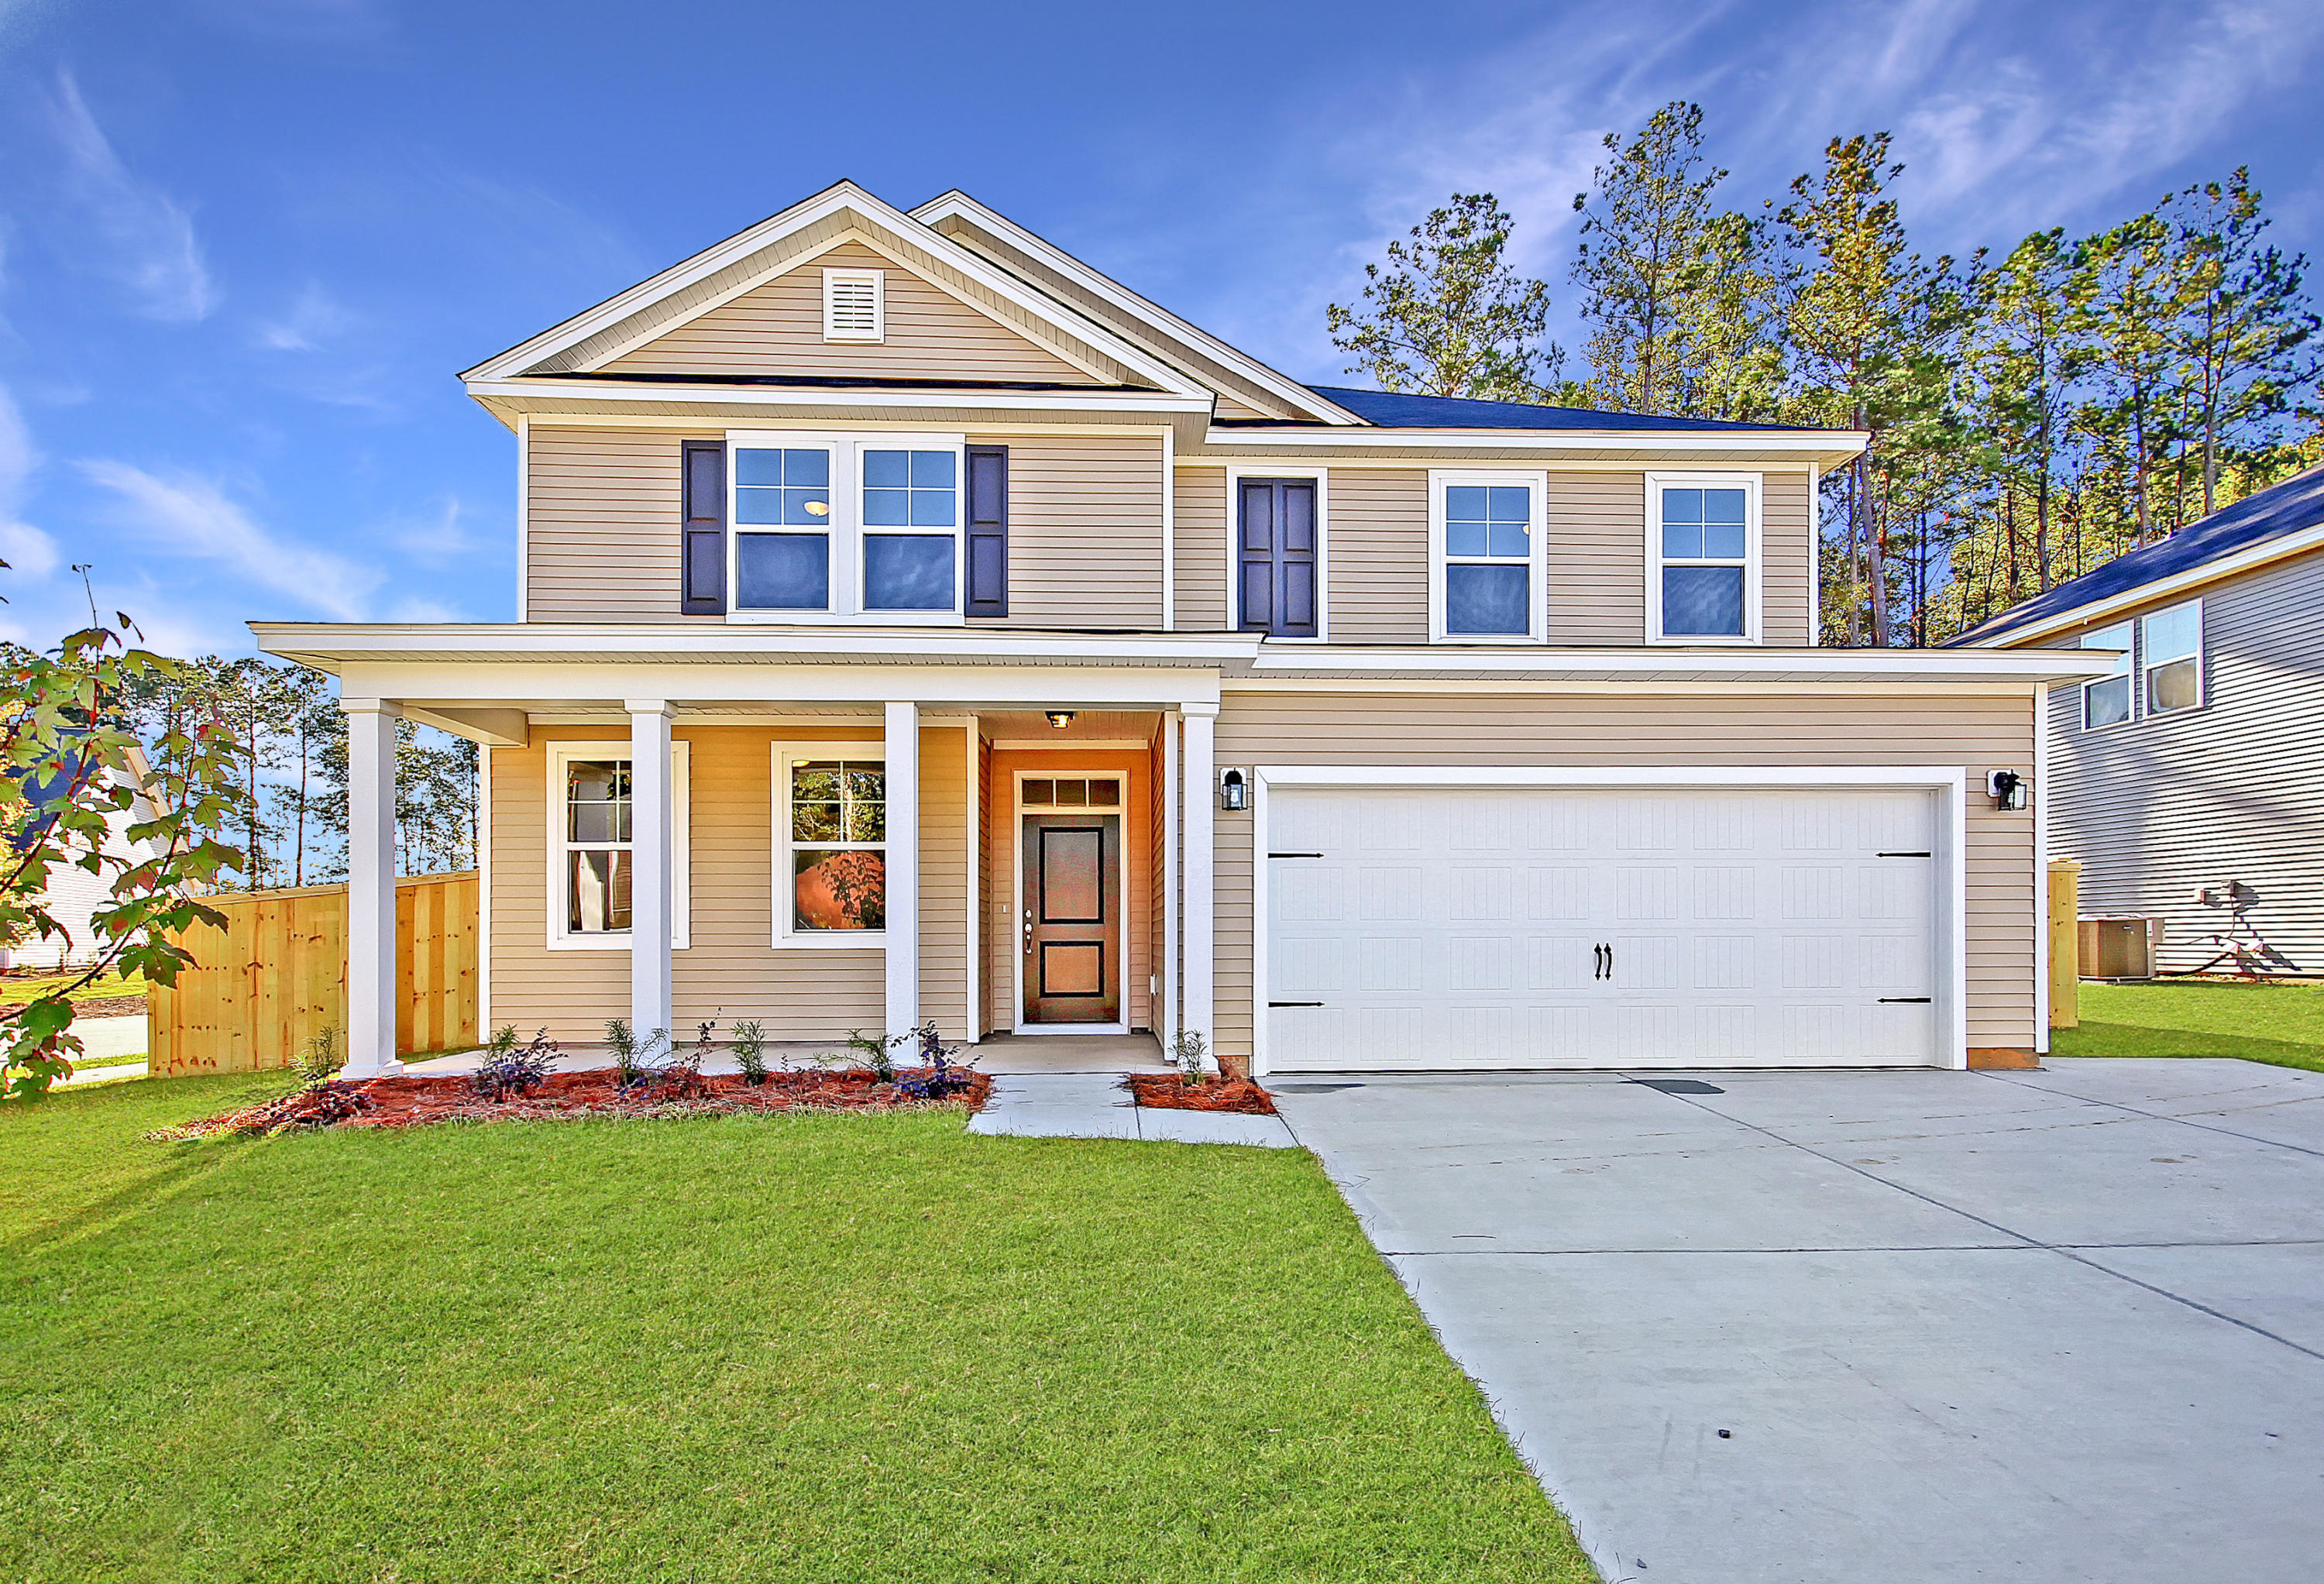 206 W. Smith Street Summerville, SC 29485